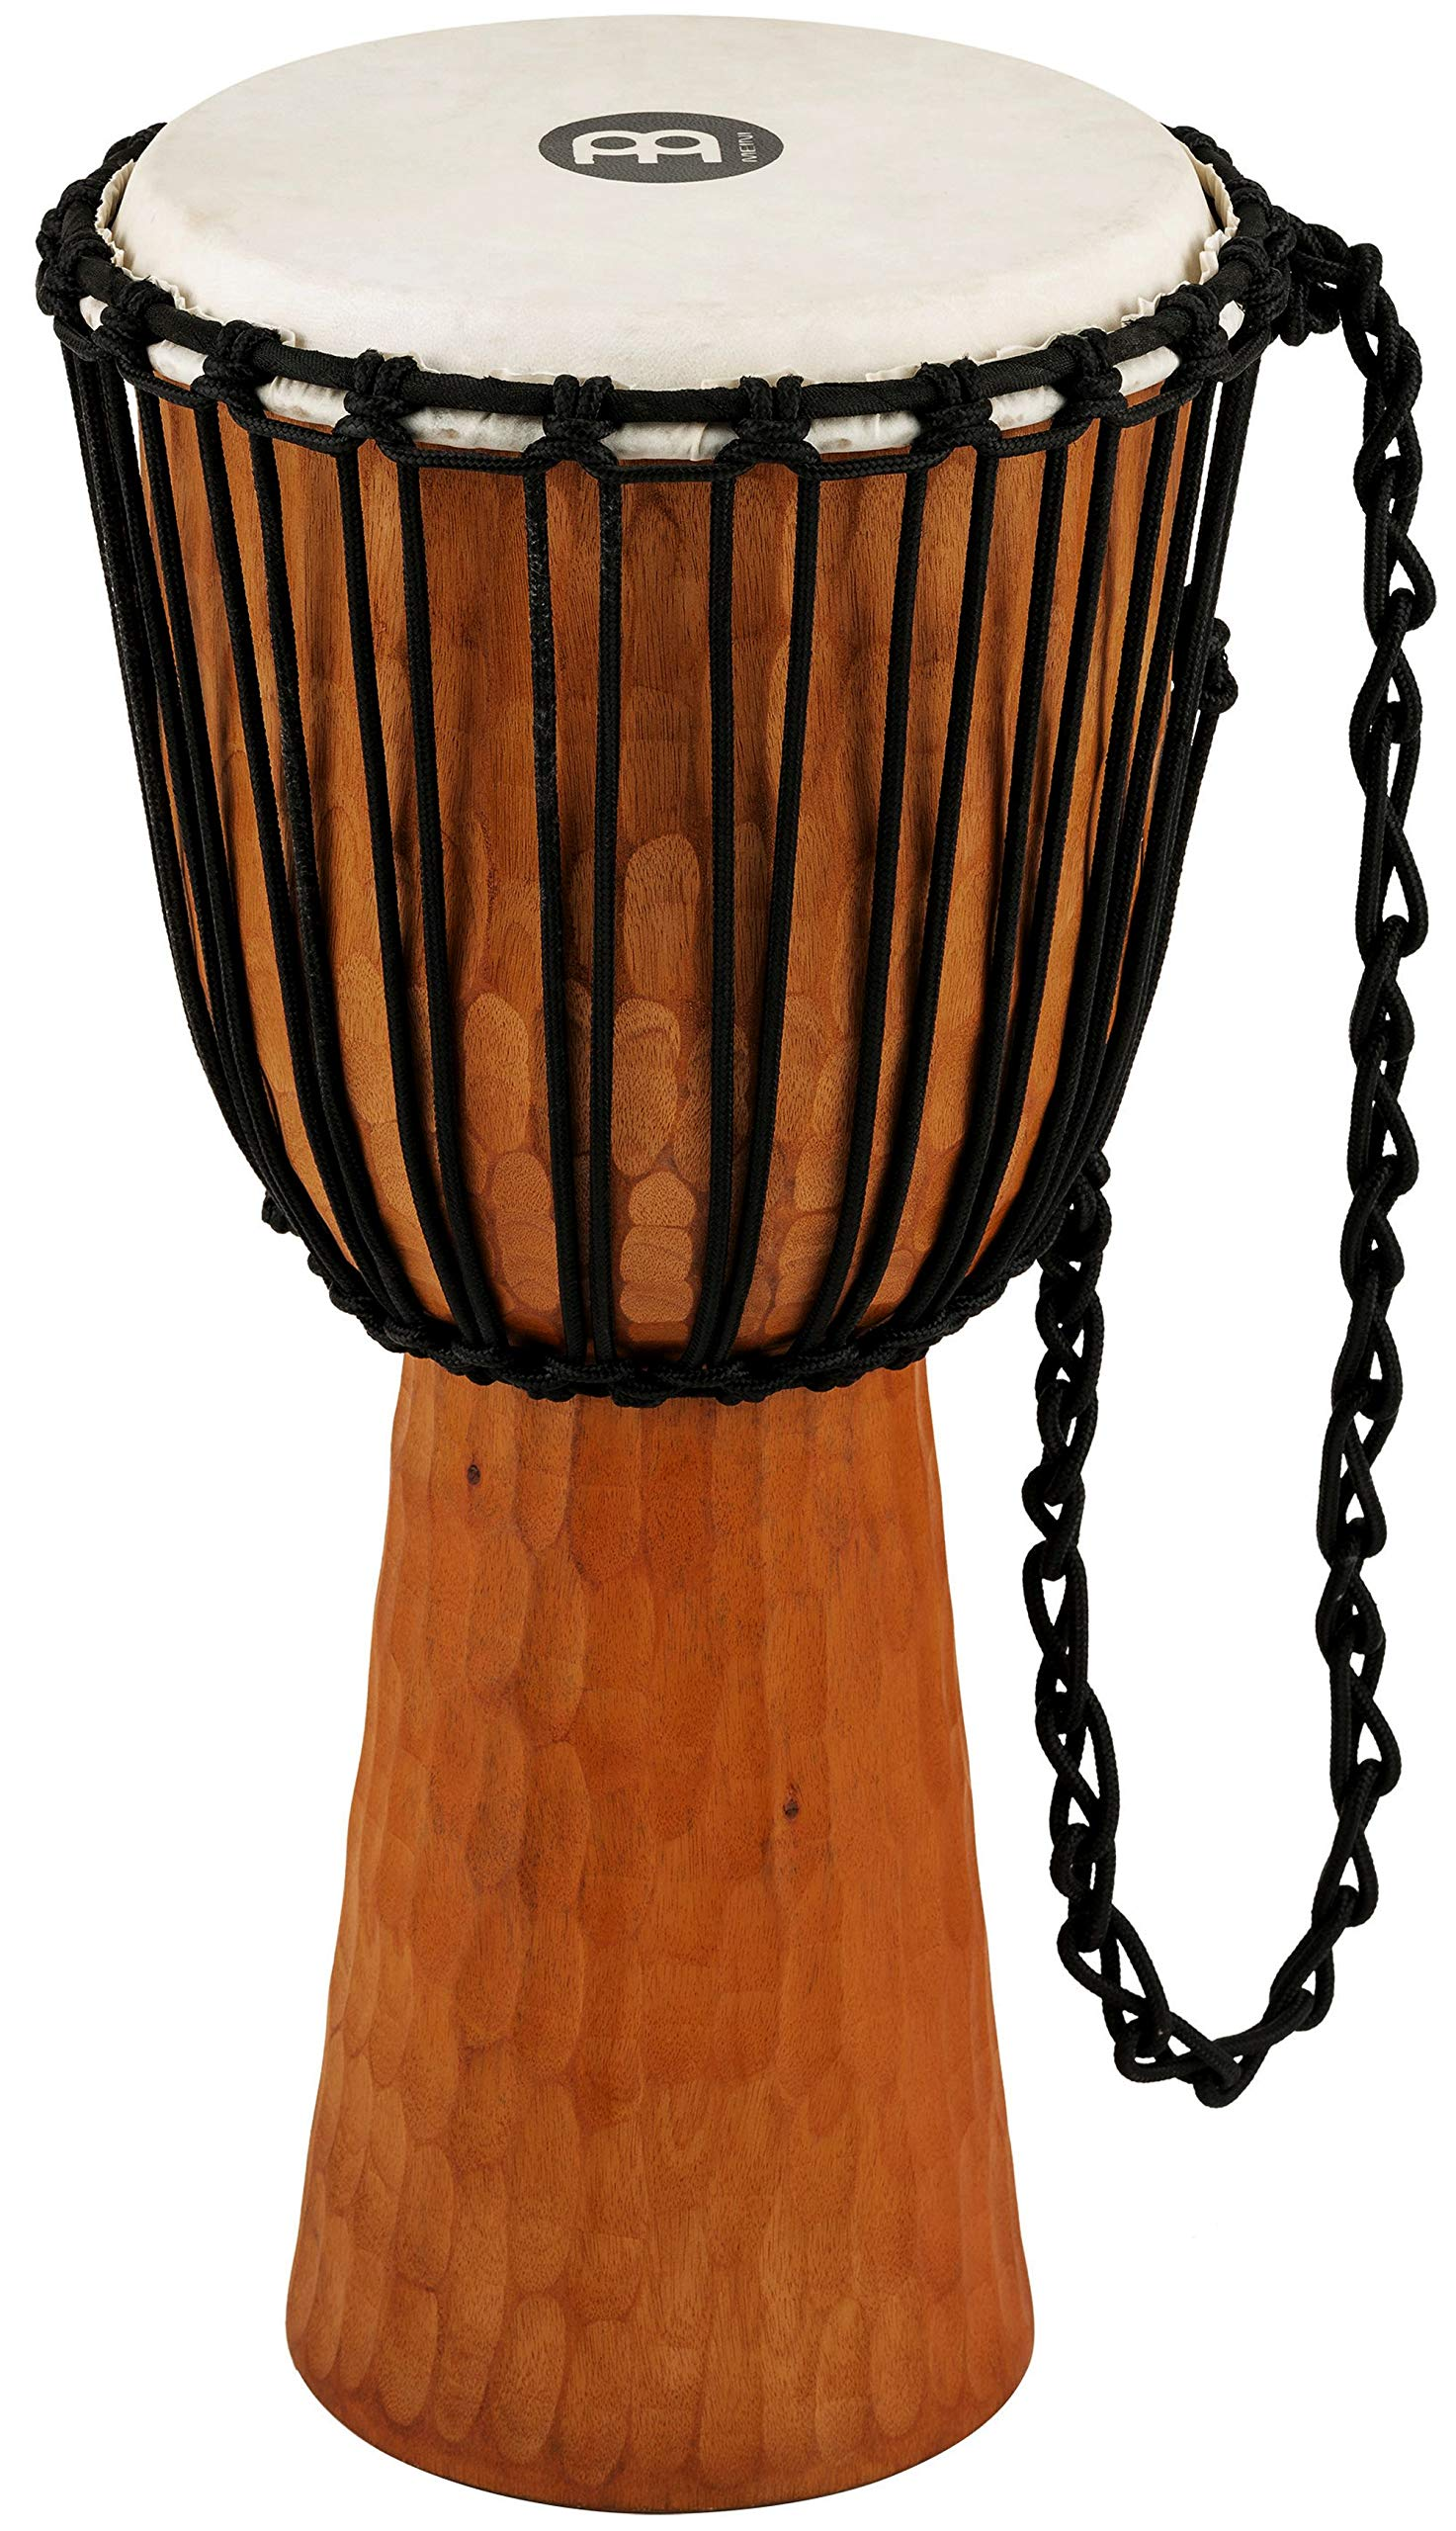 Meinl Percussion Djembe with Mahogany Wood-NOT Made in CHINA-12 Large Size Rope Tuned Goat Skin Head, 2-Year Warranty, Brown, 12'' (HDJ4-L) by Meinl Percussion